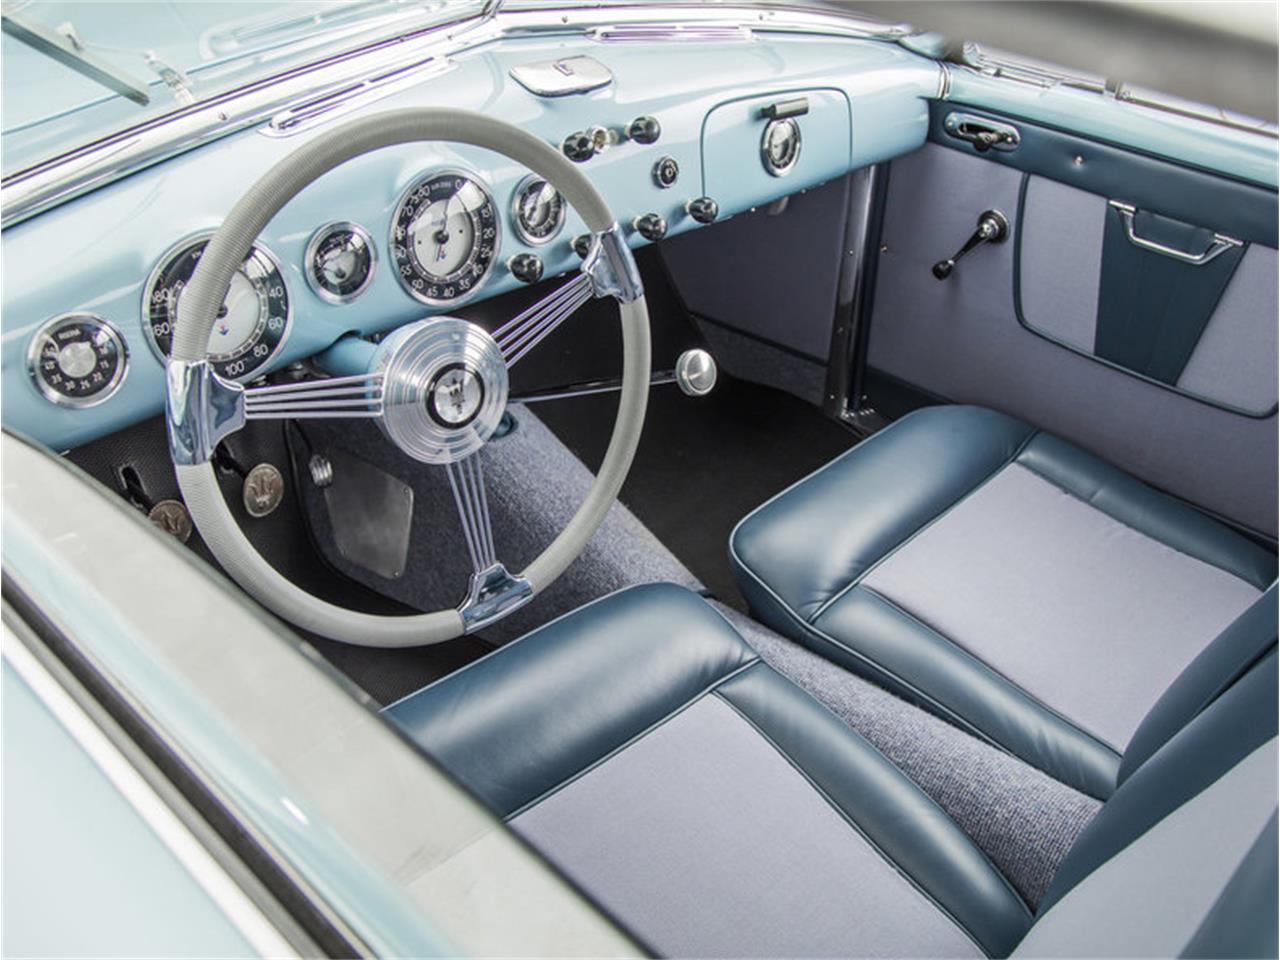 Large Picture of Classic '48 Maserati A6/1500 located in California Auction Vehicle - MZAS